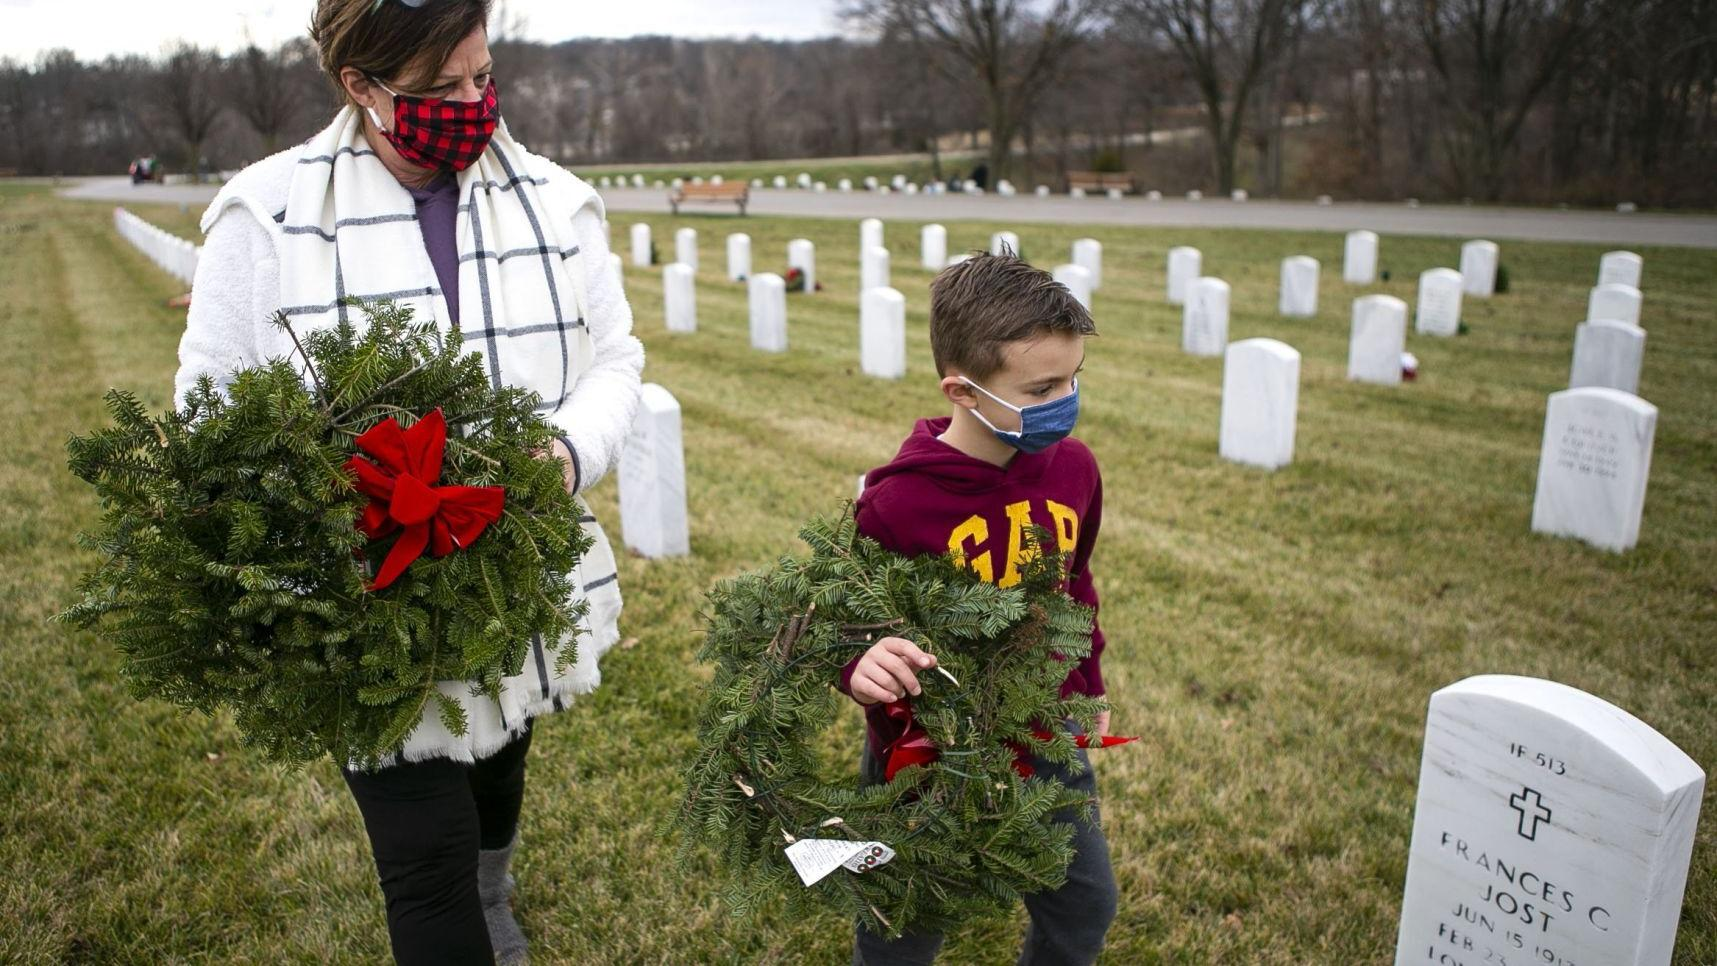 Photos: Wreaths hung on veterans' graves for National Wreaths Across America Day